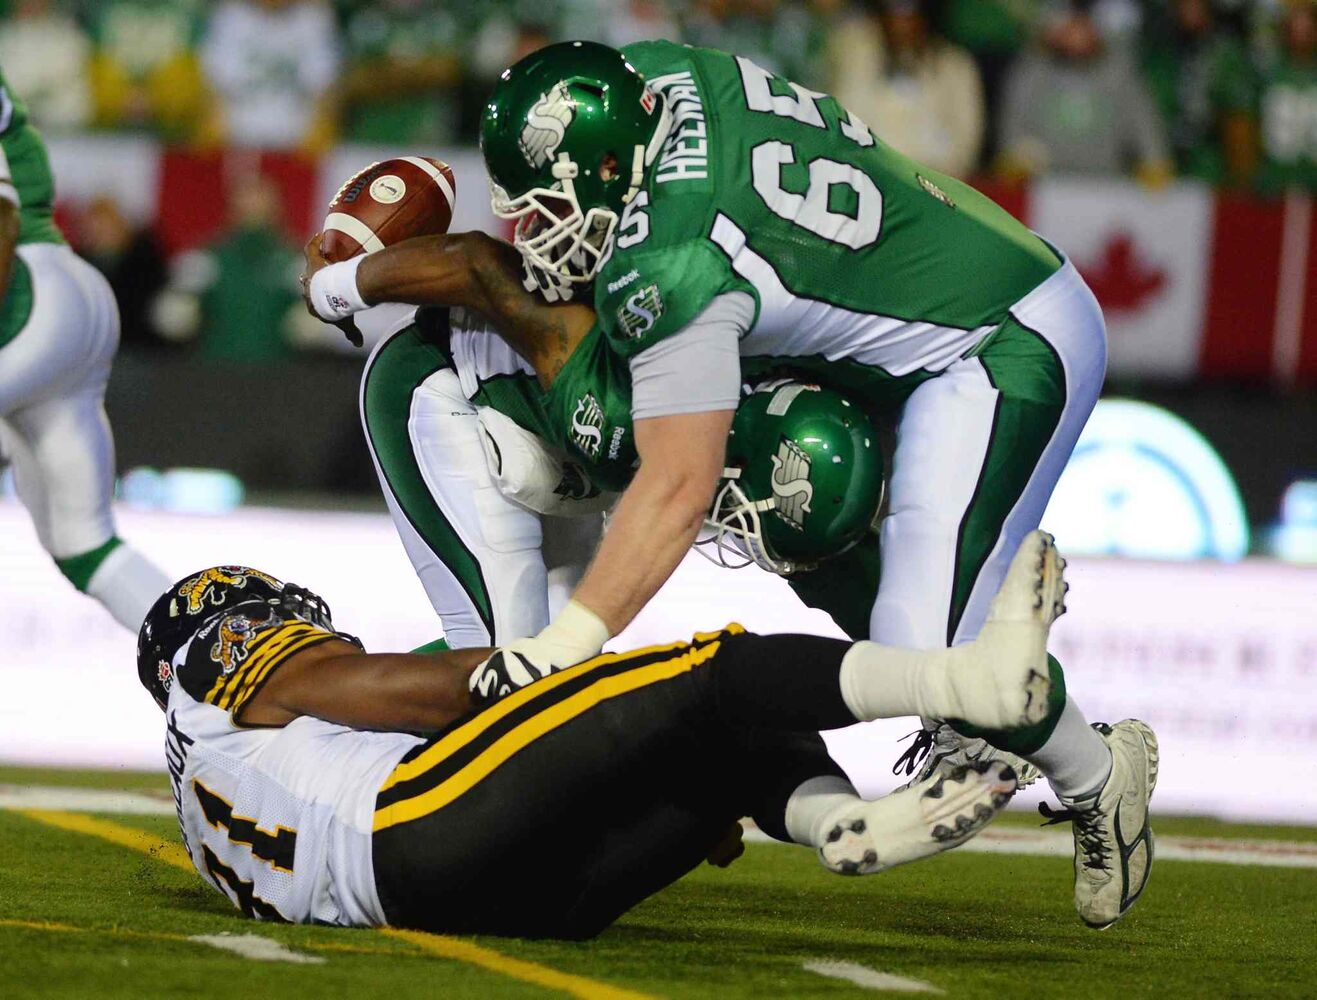 Saskatchewan Roughriders quarterback Darian Durant loses the ball as he is tackled by Hamilton Tiger-Cats defensive lineman Brandon Boudreaux while Roughriders offensive lineman Ben Heenan covers during the first quarter. (Liam Richards / The Canadian Press)